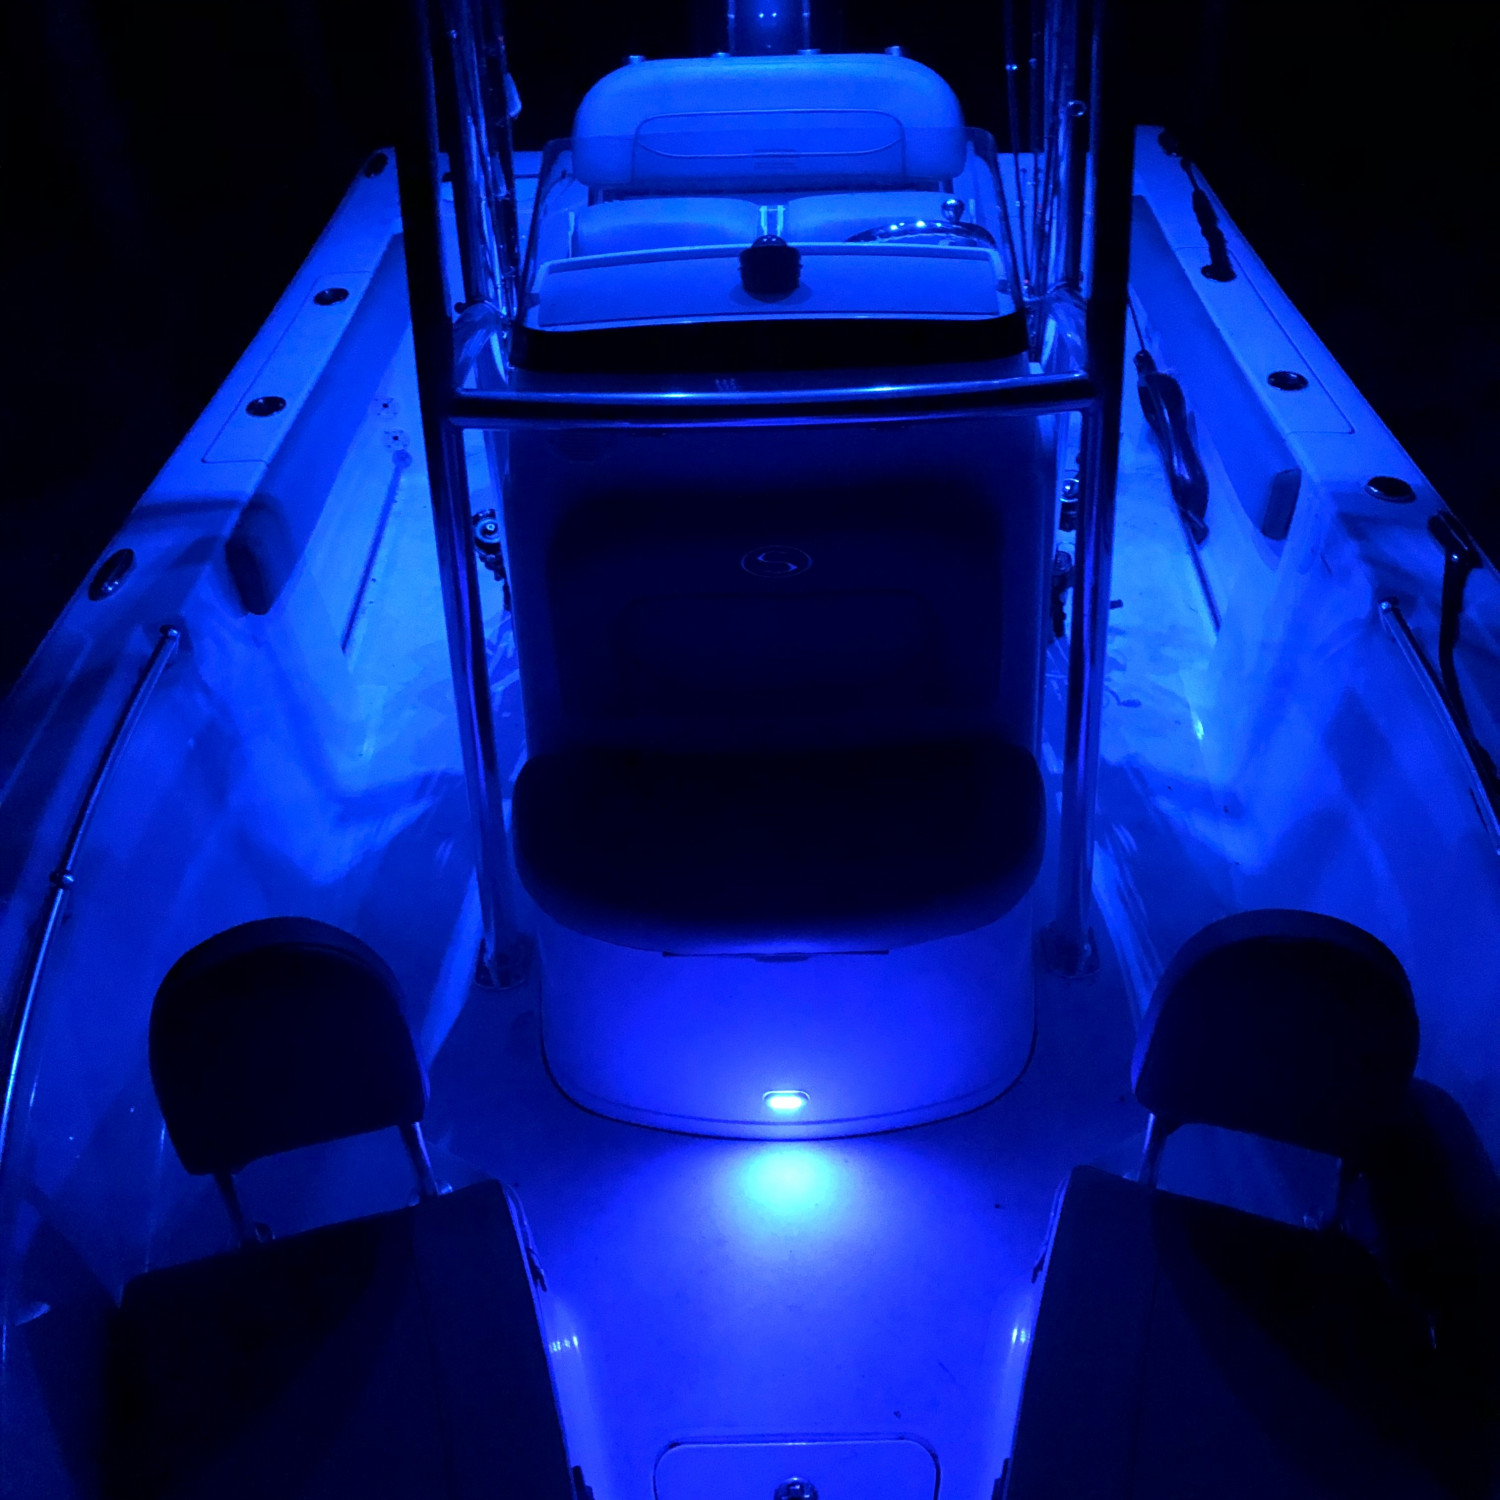 Title: Cool at night - On board their Sportsman Open 212 Center Console - Location: Upstate South Carolina. Participating in the Photo Contest #SportsmanMarch2018